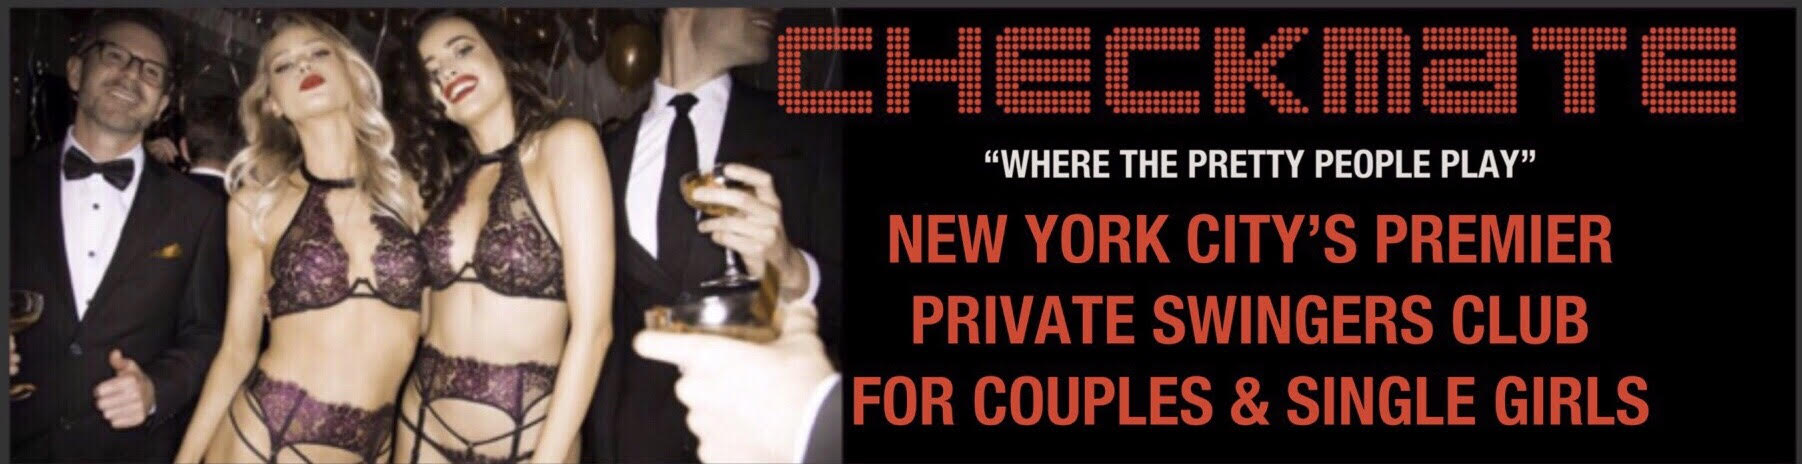 Checkmate NYC and upcoming Beverly Hills Swinger Club